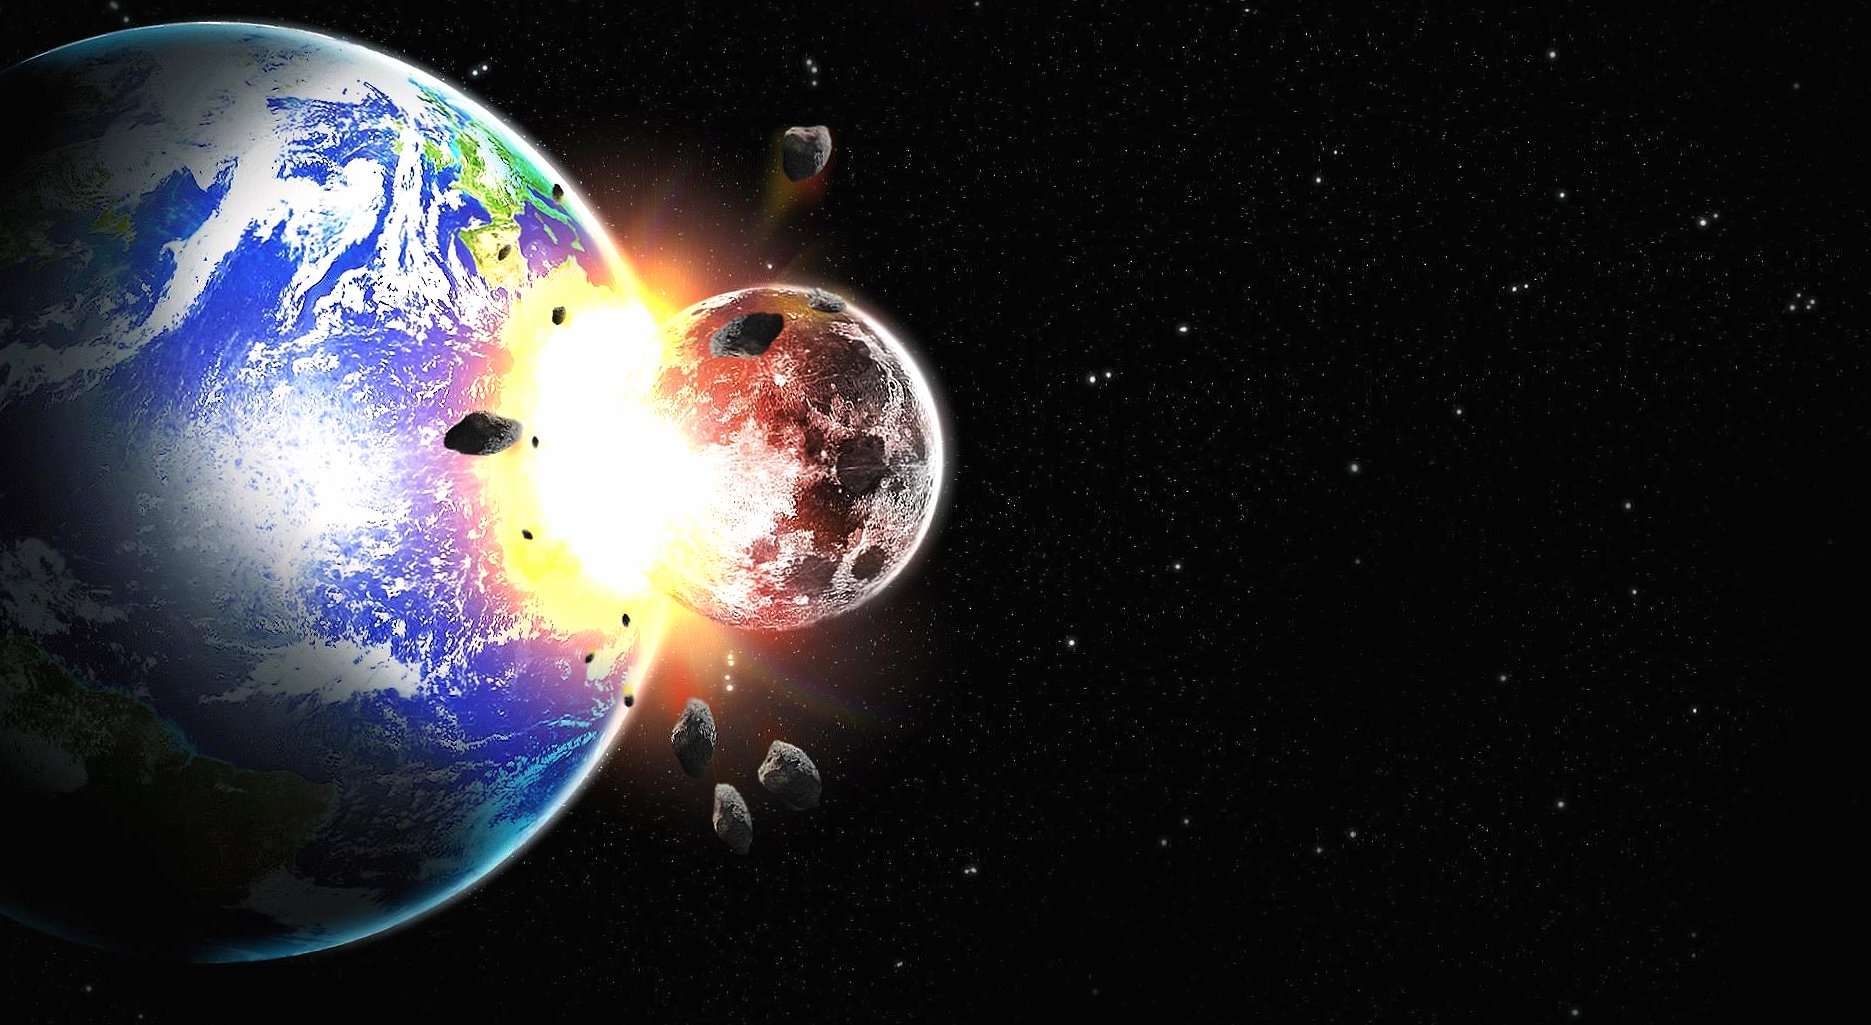 Moon and earth impact wallpapers HD quality